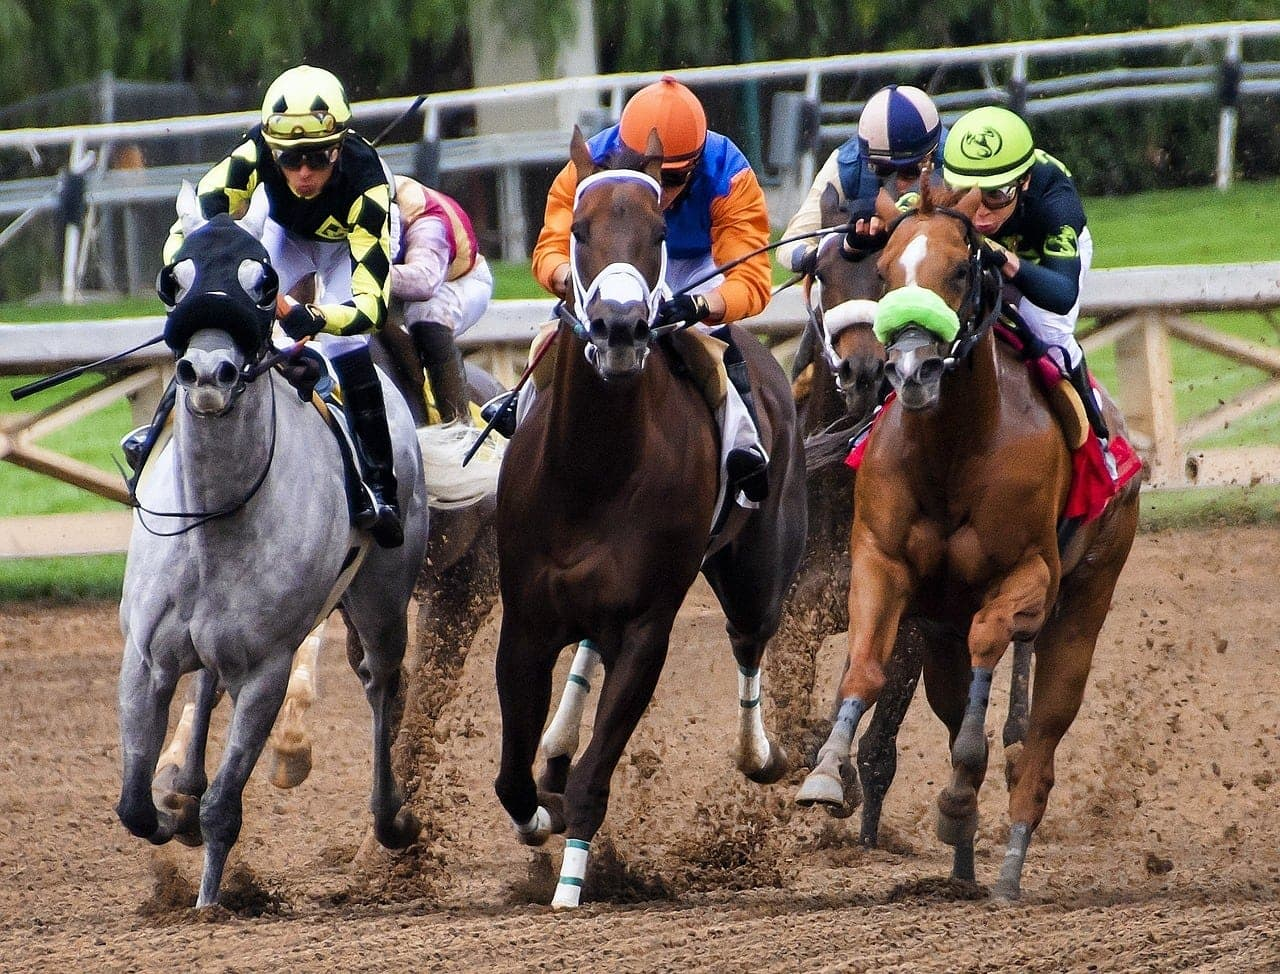 racehorses on track